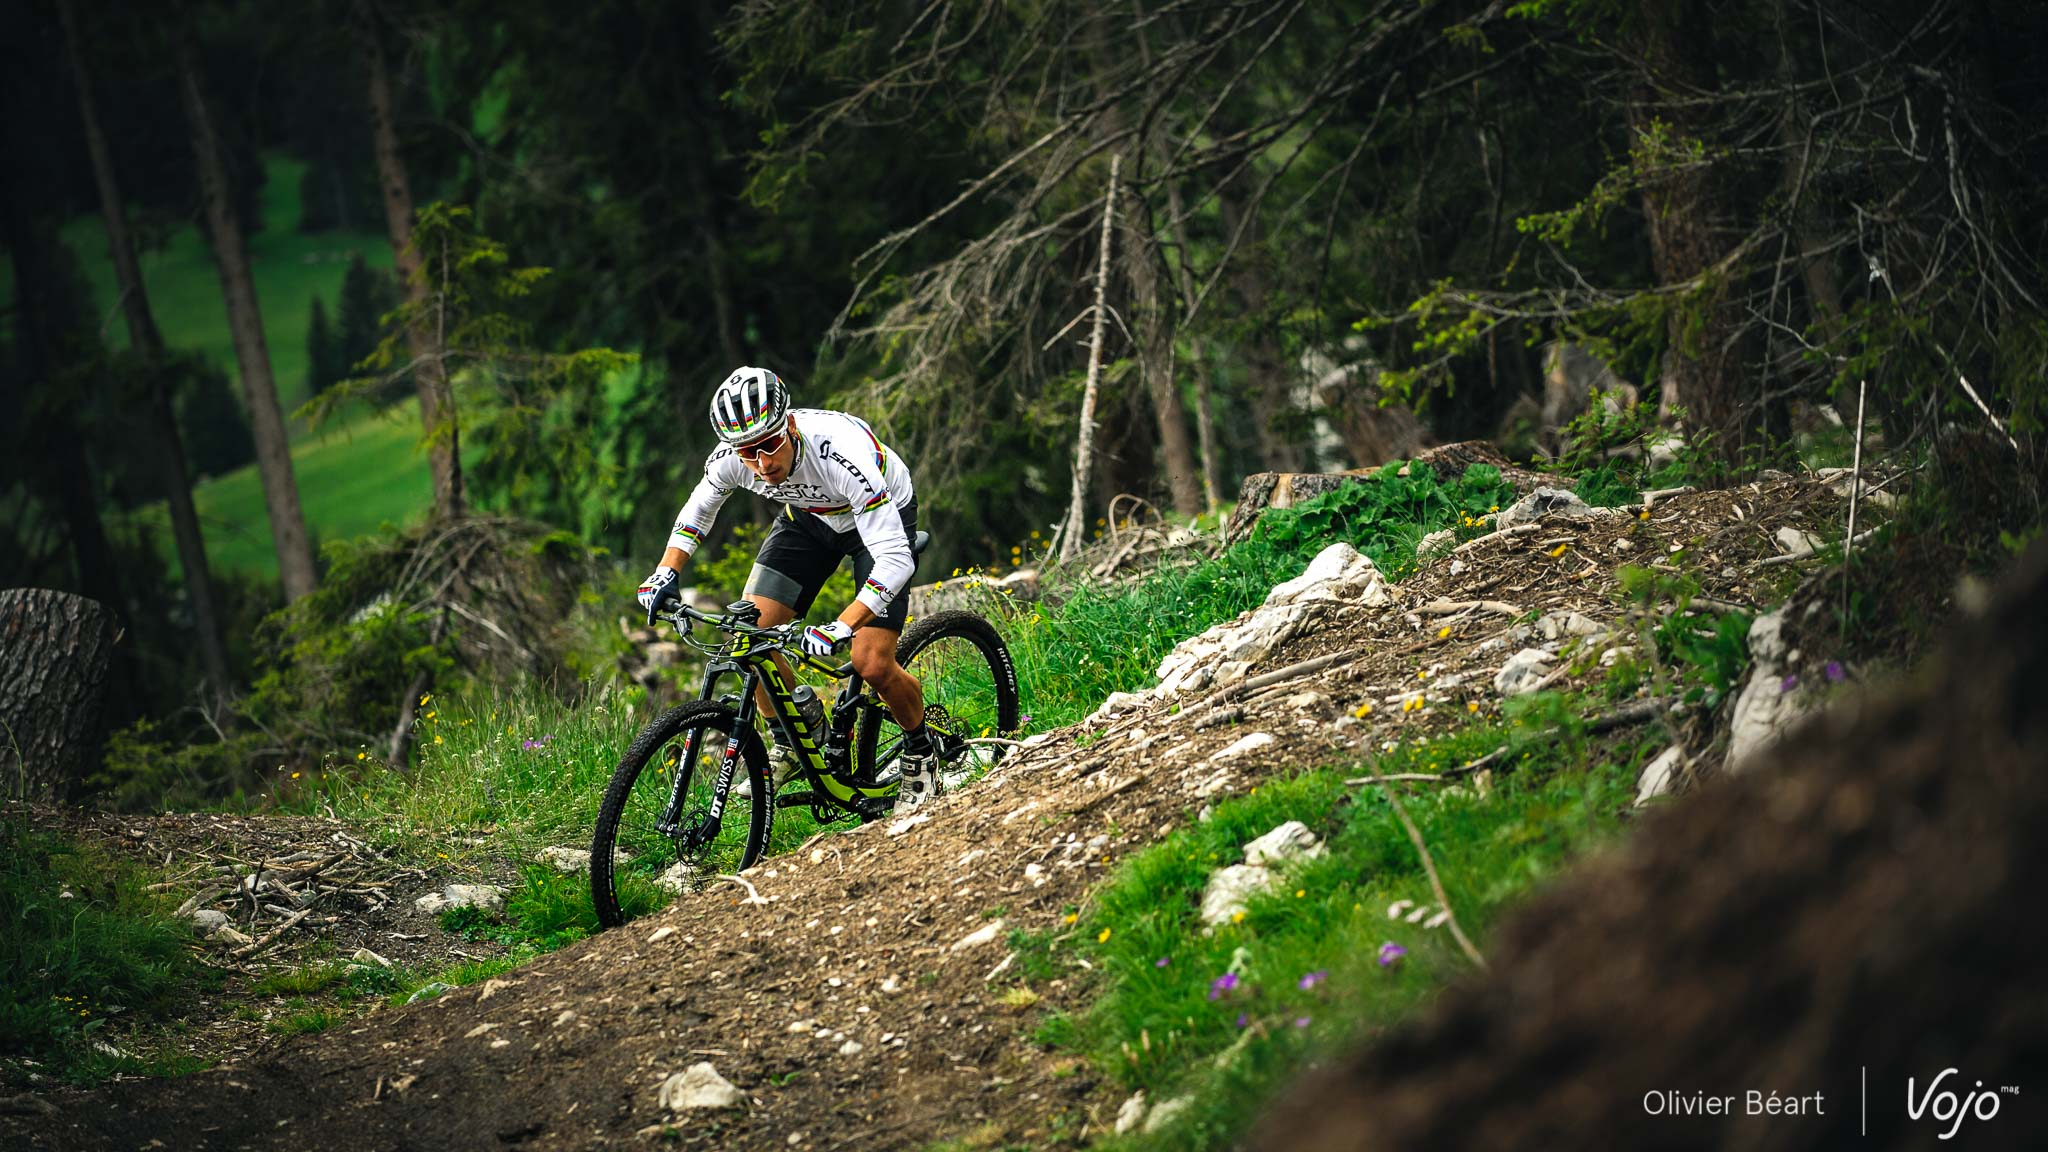 Nino_Schurter_Interview_Scott_Spark_Scale_Copyright_OBeart_VojoMag-5